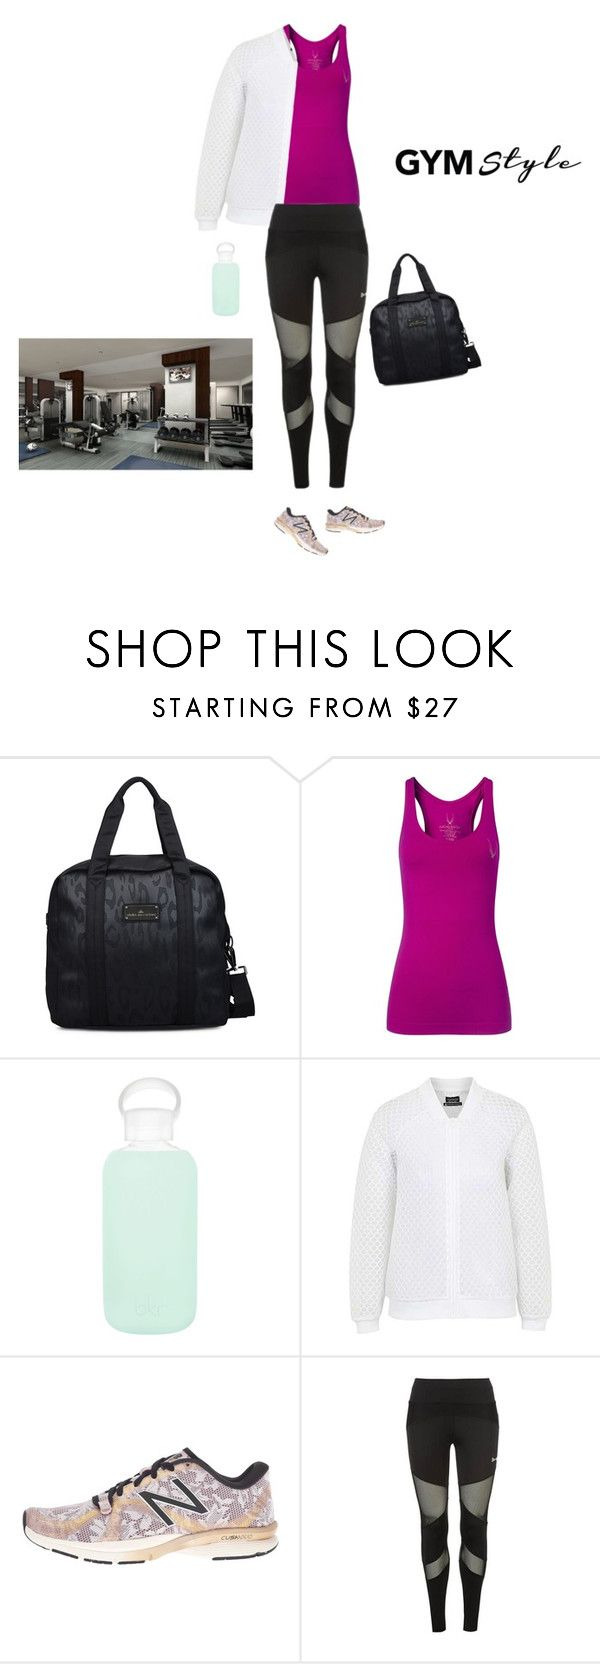 """""""Evening Workout"""" by marinavl ❤ liked on Polyvore featuring adidas, Lucas Hugh, bkr, Topshop, New Balance and USA Pro"""